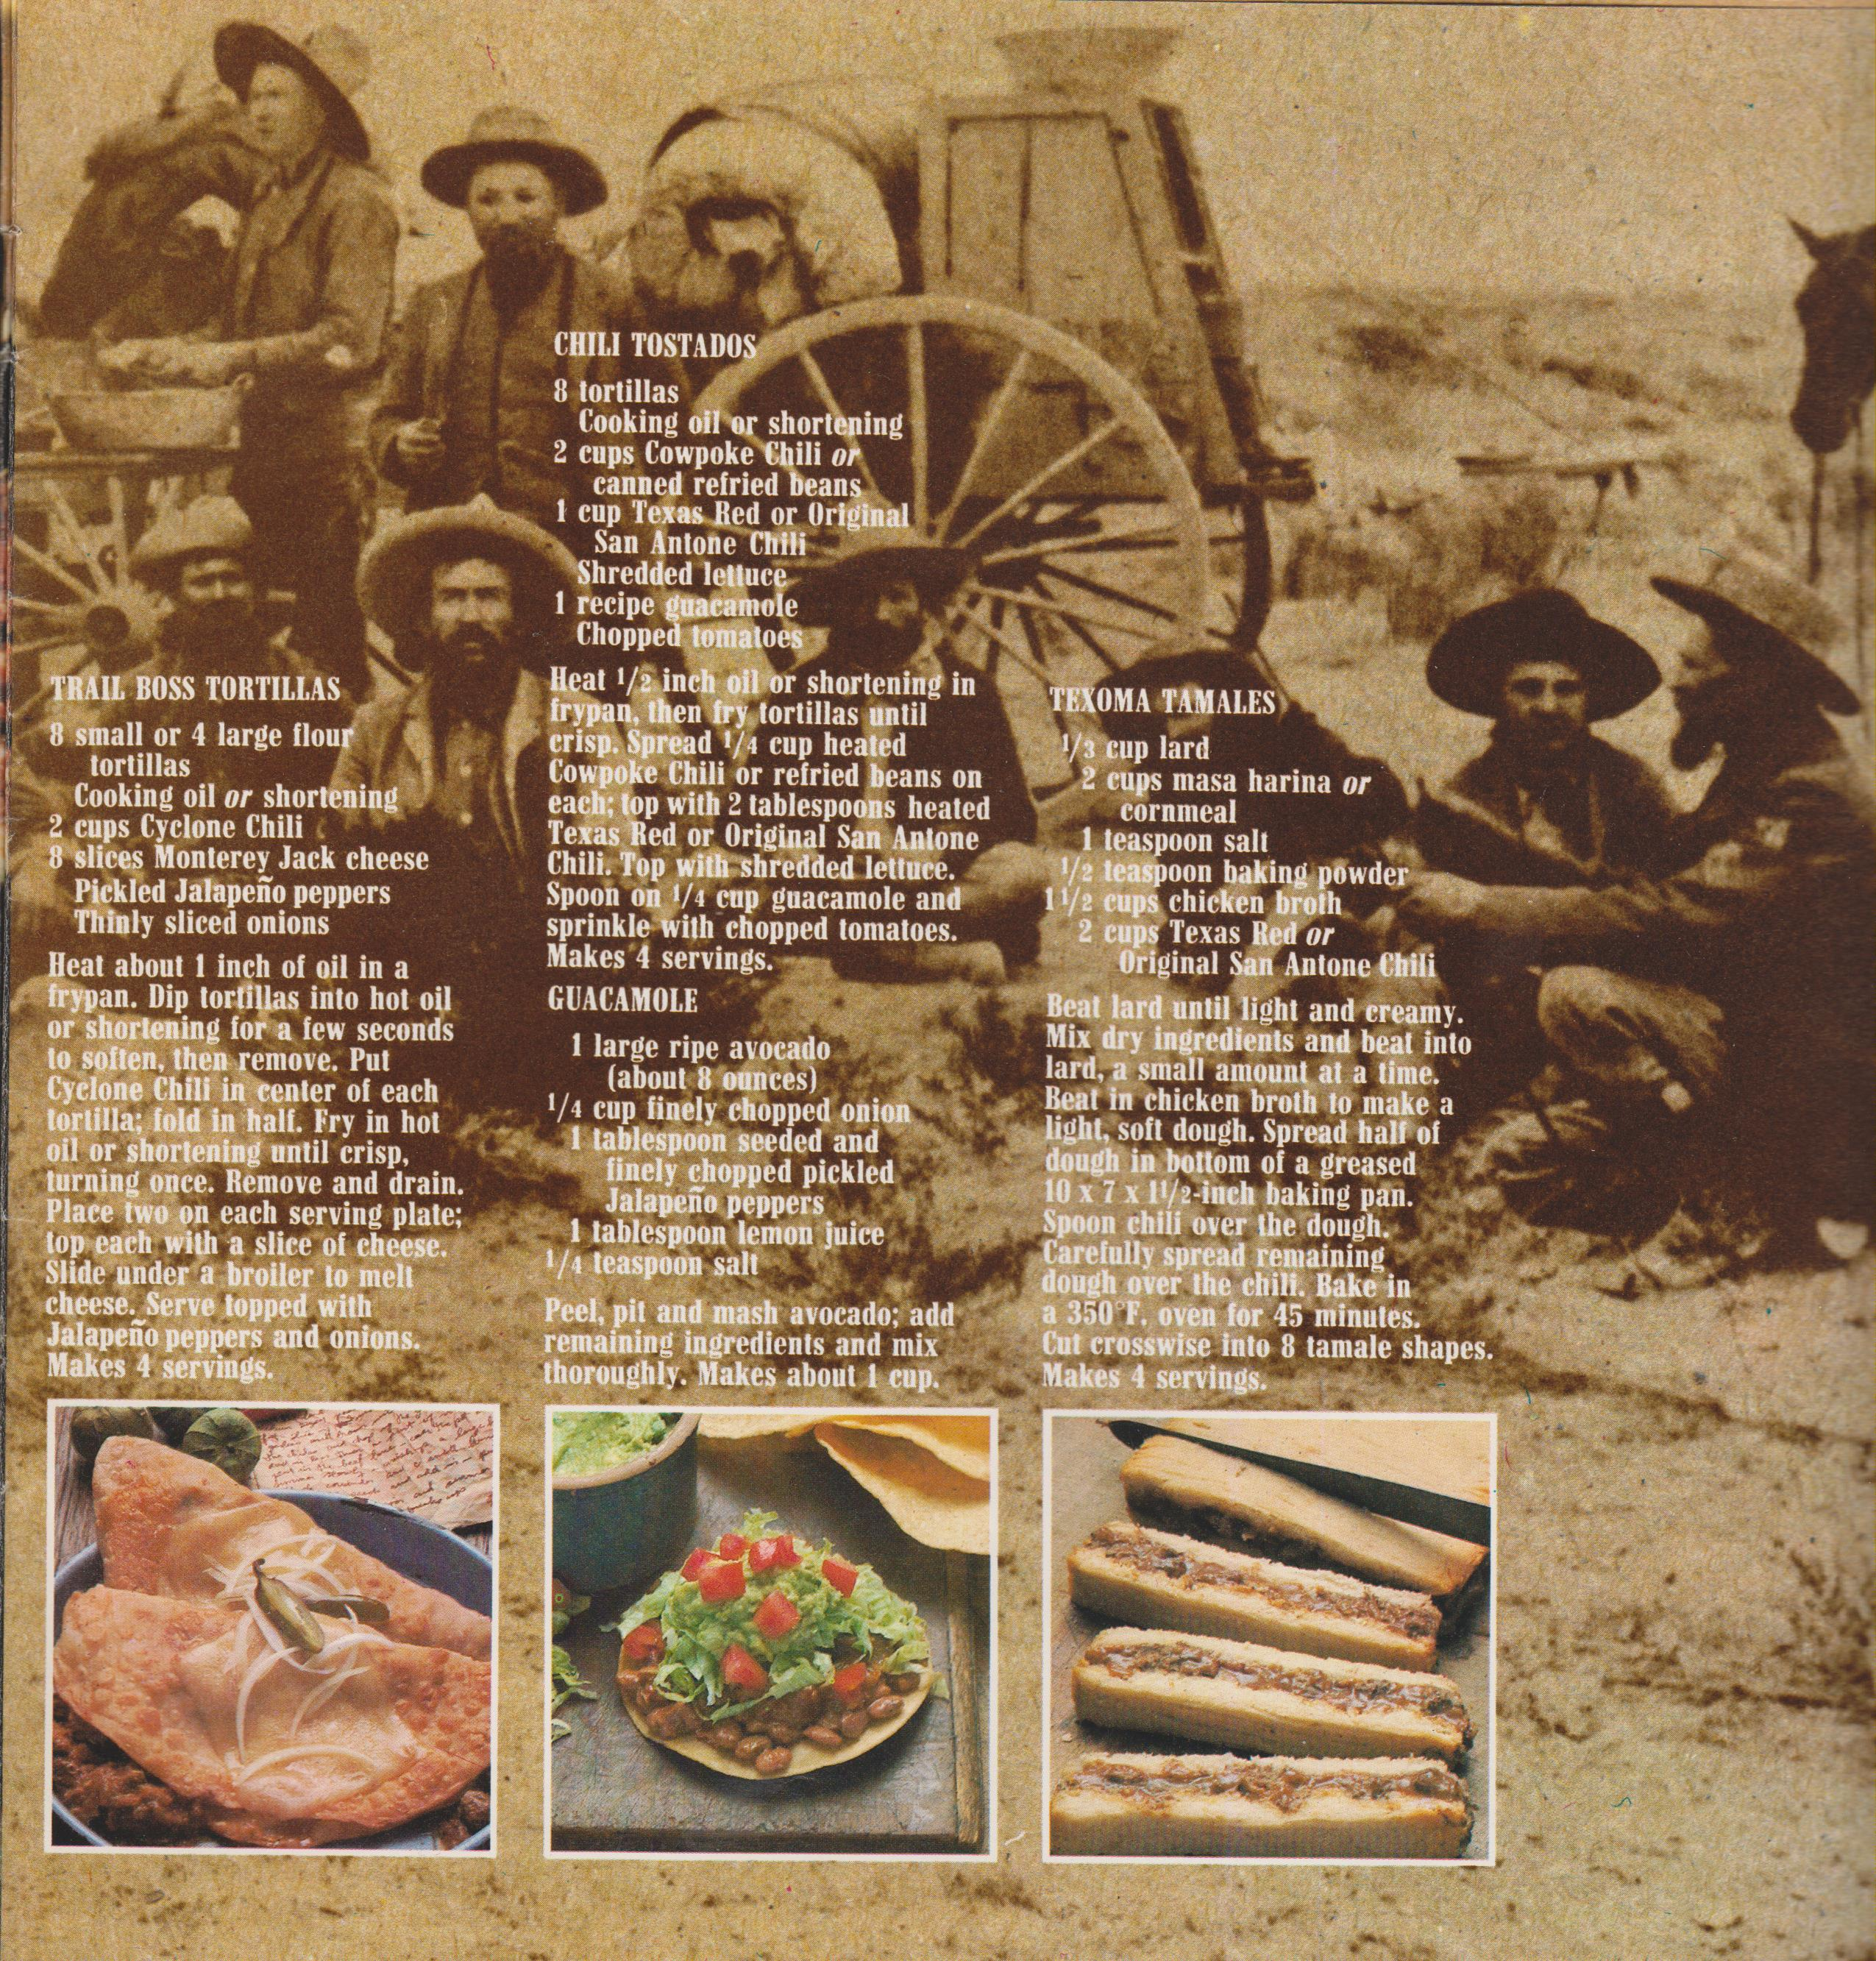 Famous Chili Recipes From Marlboro Country Claudemathews